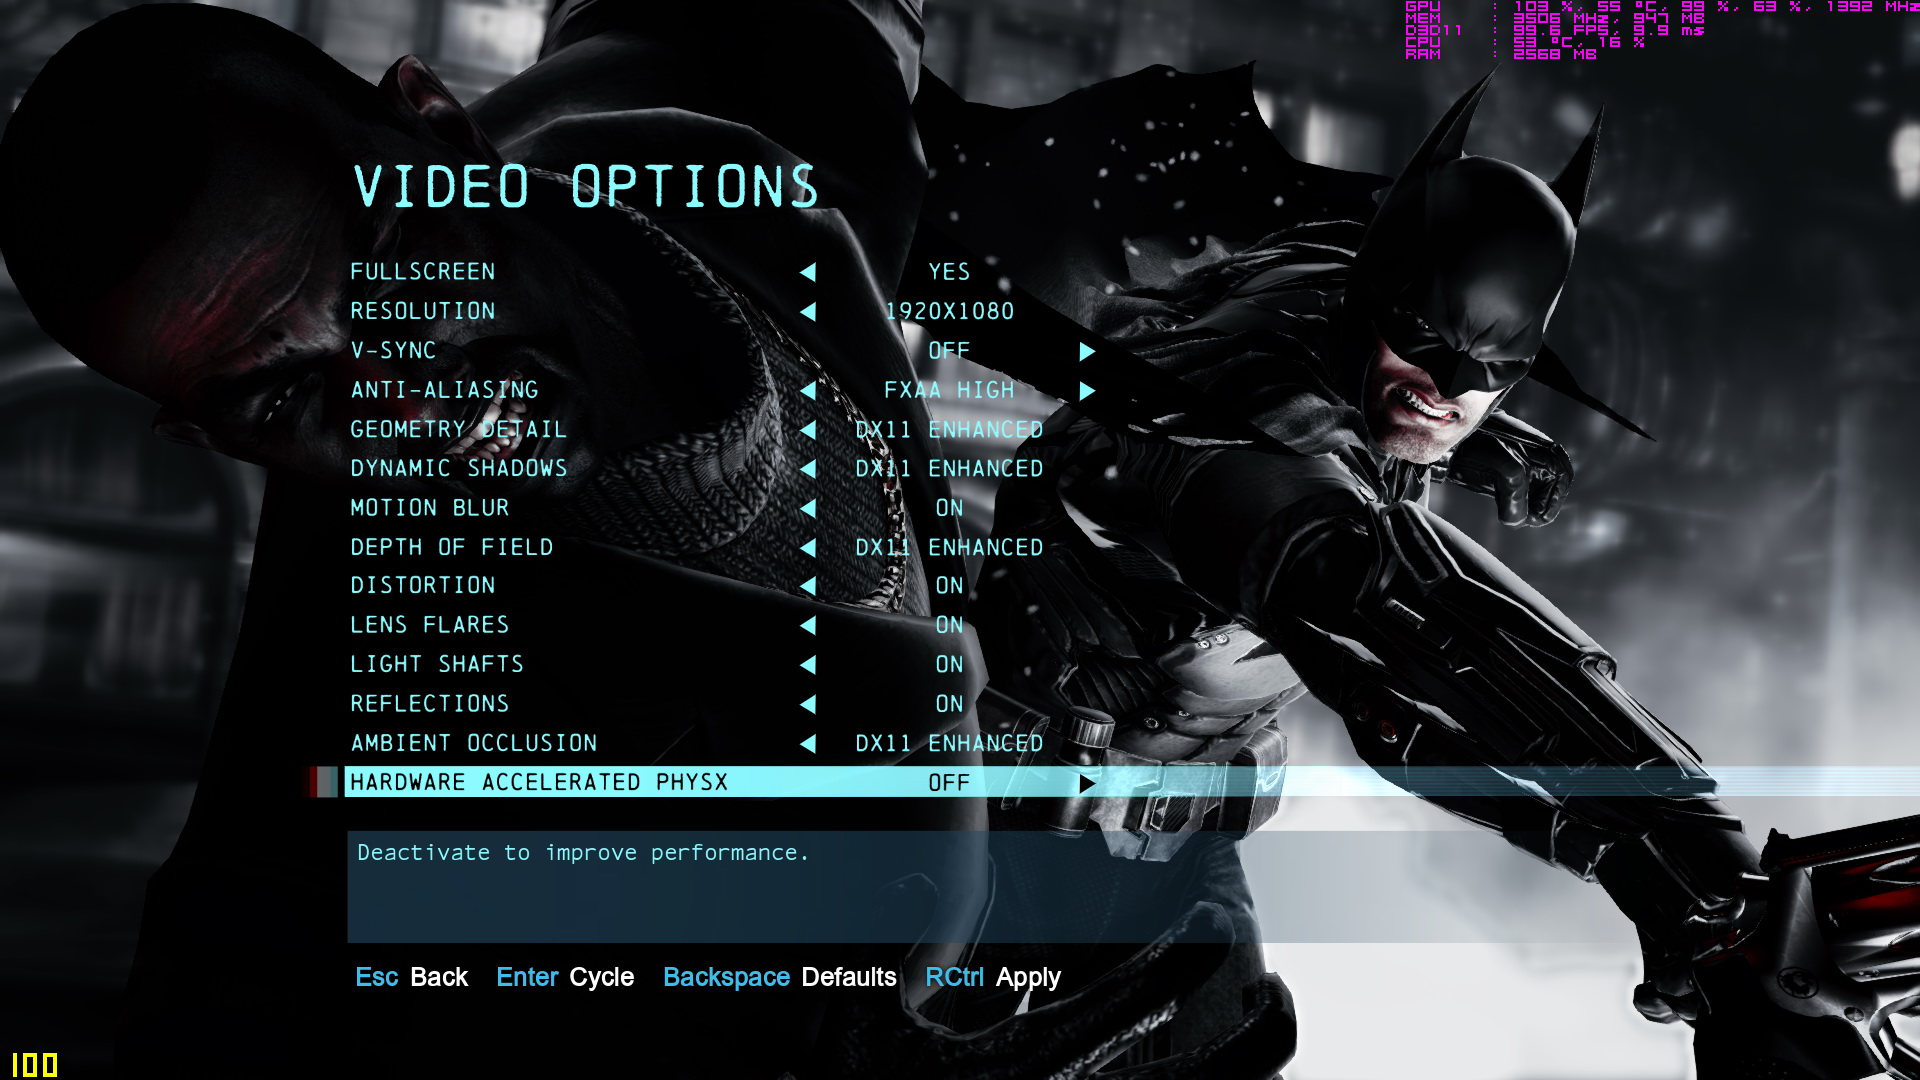 BatmanOrigins 2016-03-13 10-14-14-31-settings-PhysX-OFF